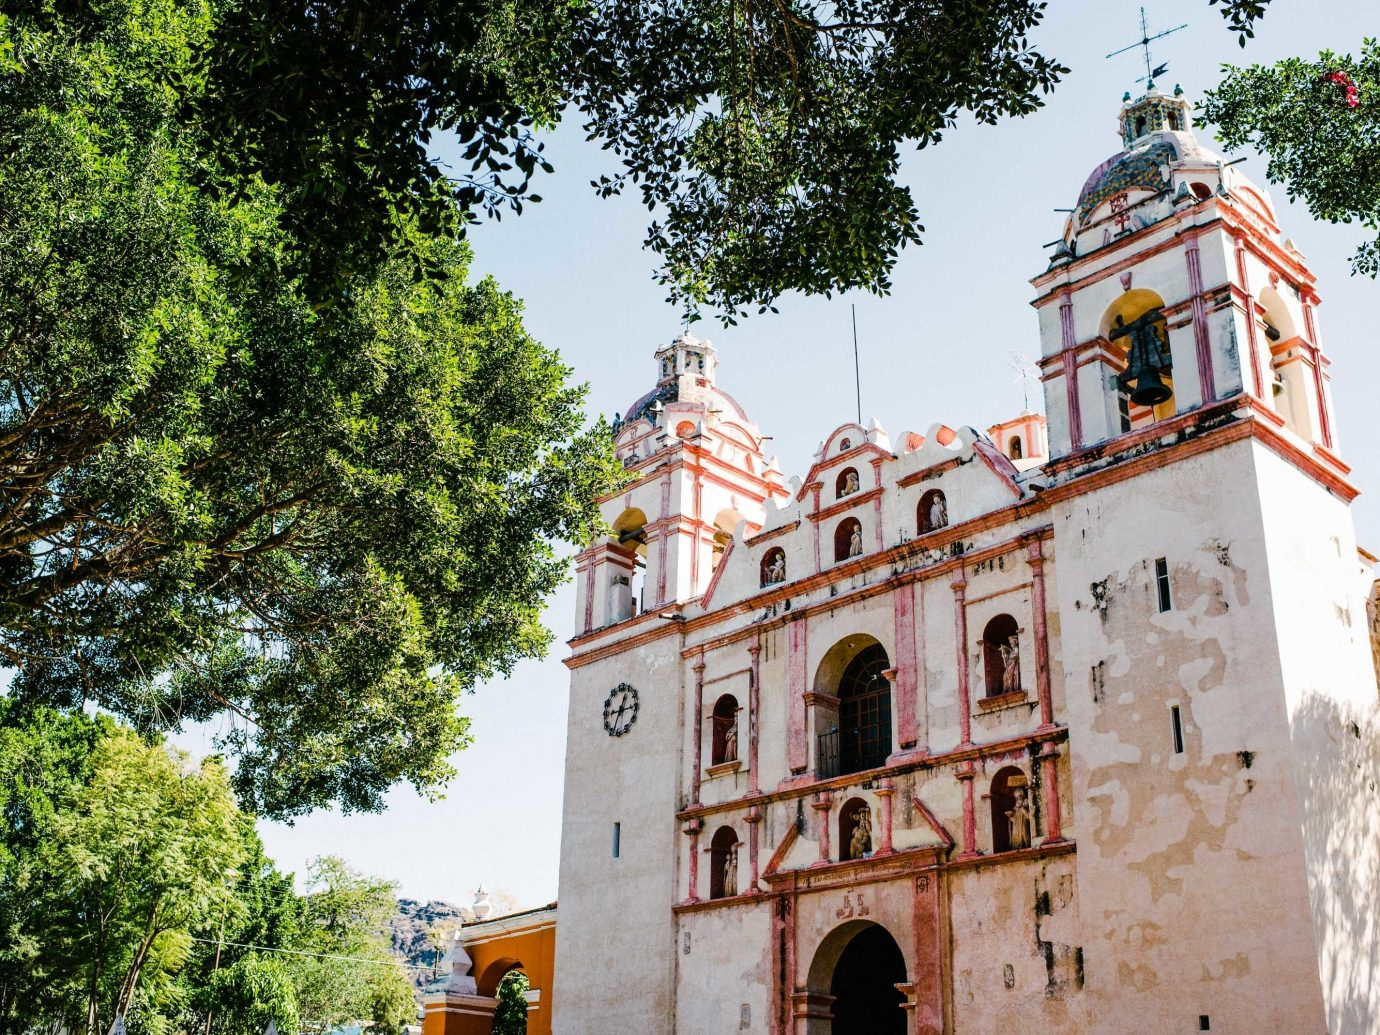 Arts + Culture Mexico Oaxaca Trip Ideas building sky historic site château tree tourist attraction palace facade monastery tourism hacienda medieval architecture place of worship estate City Church